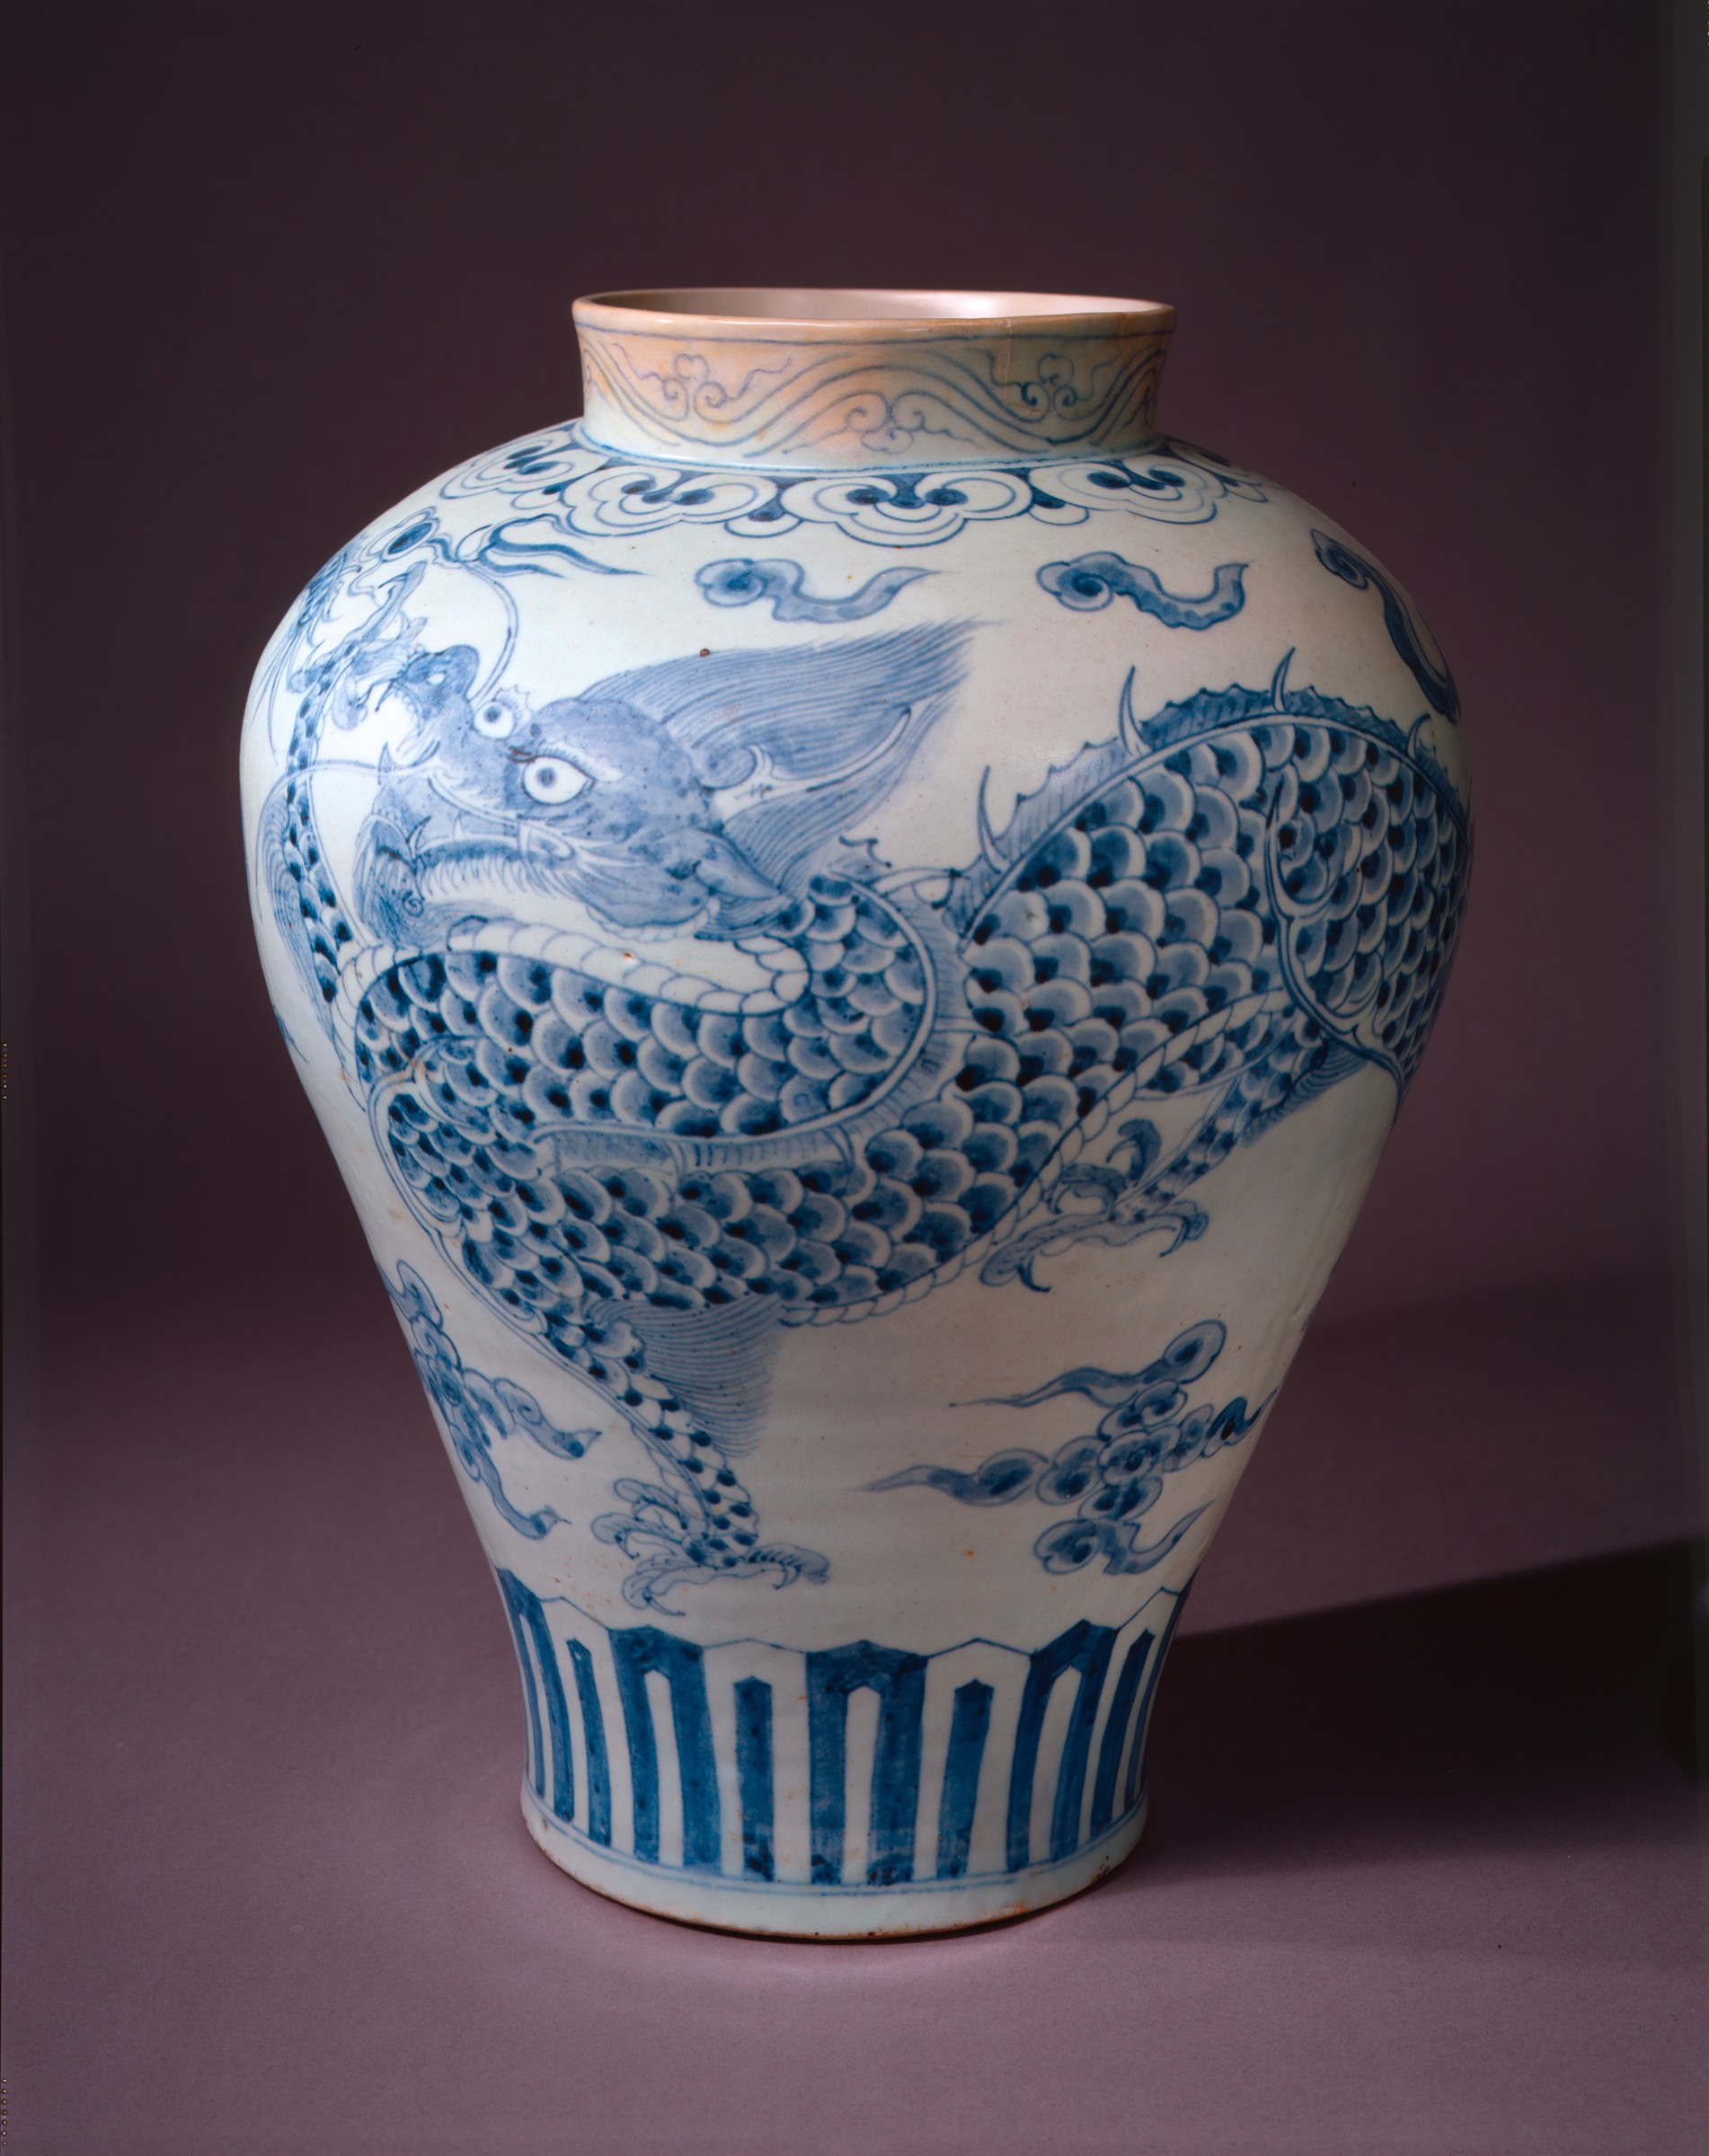 Large white jar with broad shoulders. Two blue dragons wrap around the outside of the jar, each grasping at a flaming jewel, also in blue.